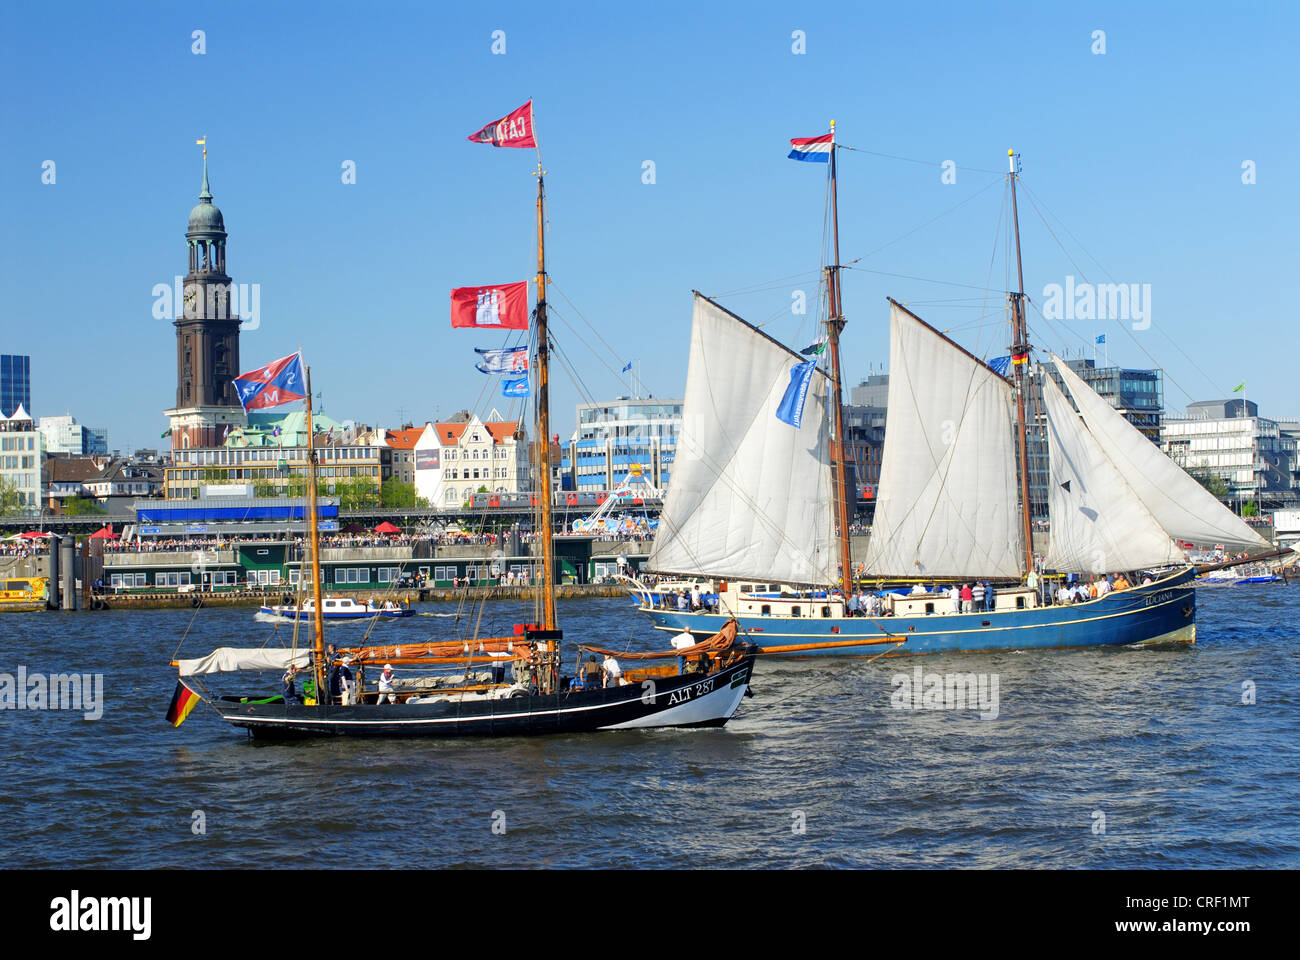 birthday of Port of Hamburg, sailboats in front of St. Michaelis, Germany, Hamburg - Stock Image